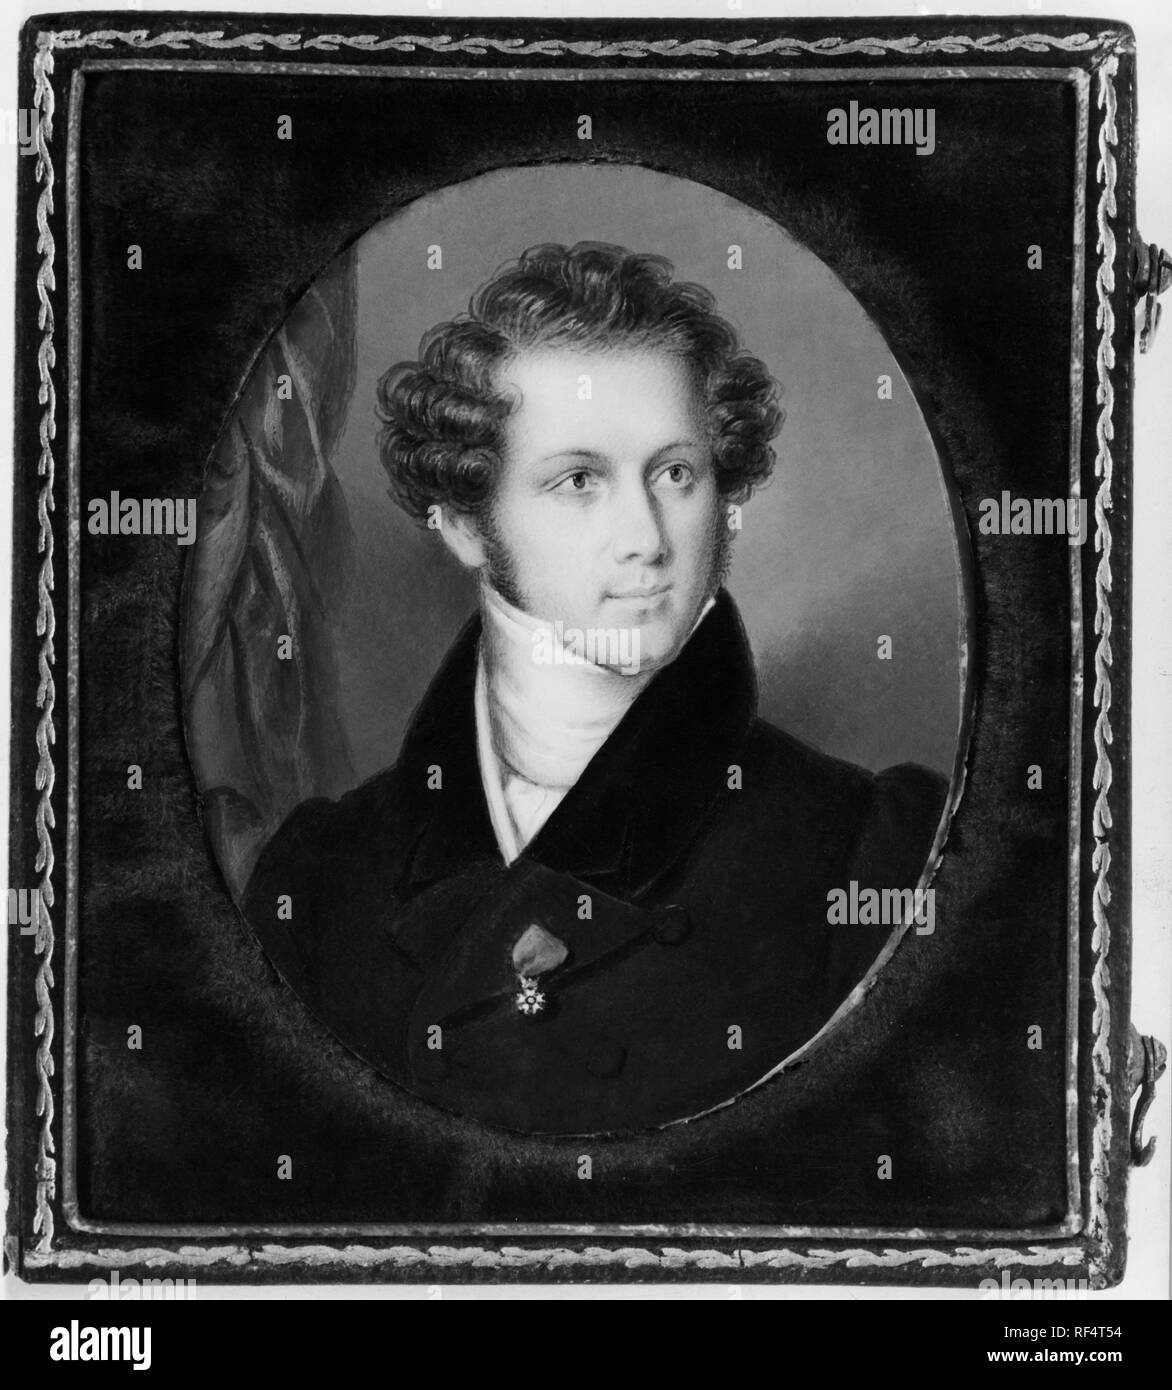 frederic millet miniature of vincenzo bellini, 1830 Stock Photo